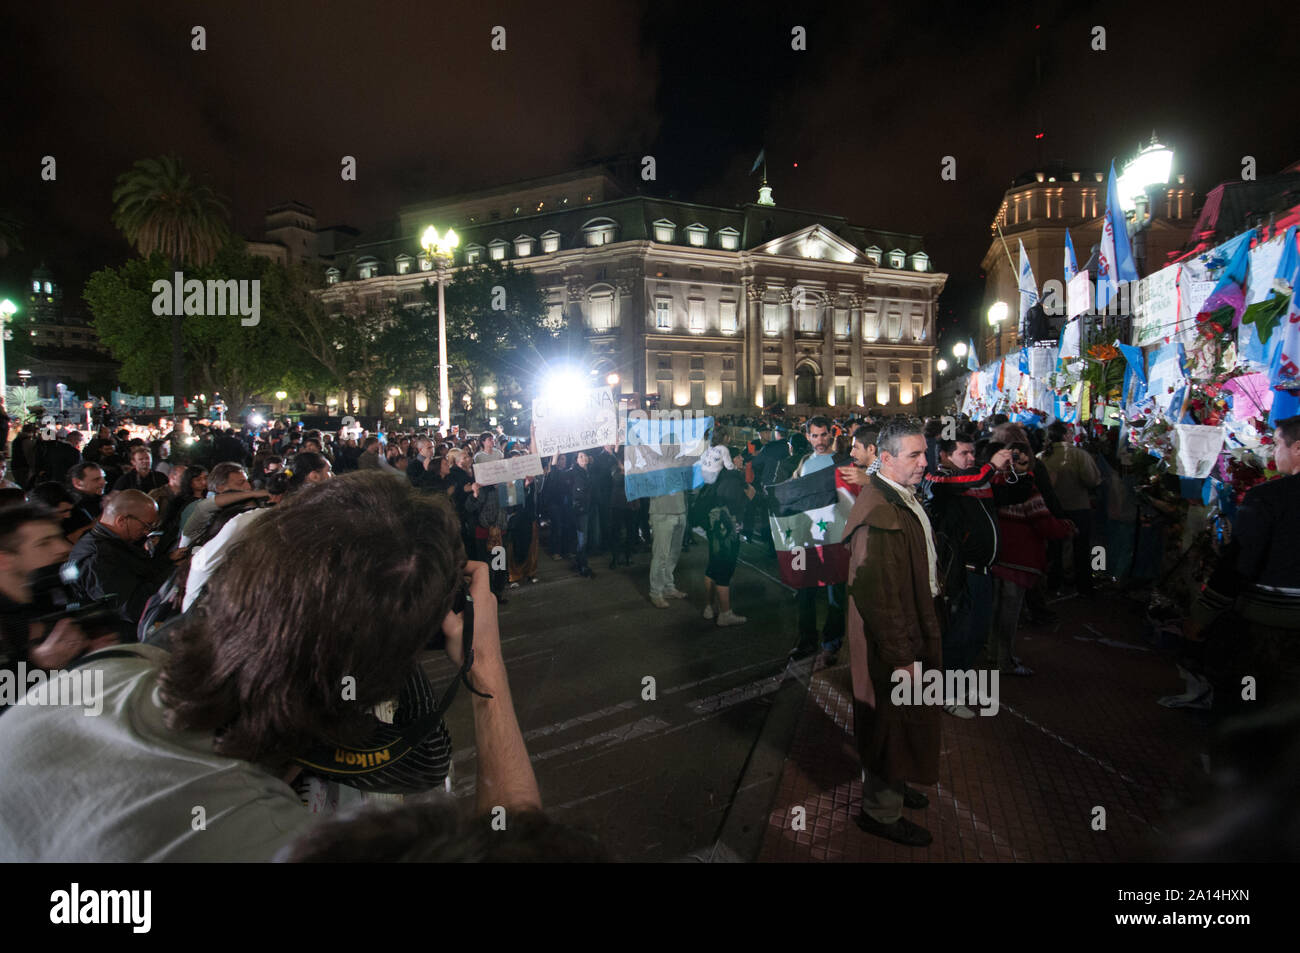 Buenos Aires, Argentina - October 27 2010: Nestor Kirchner dies in Argentina, argentinians pay tribute to the former President Nestor Kirchner in the Stock Photo